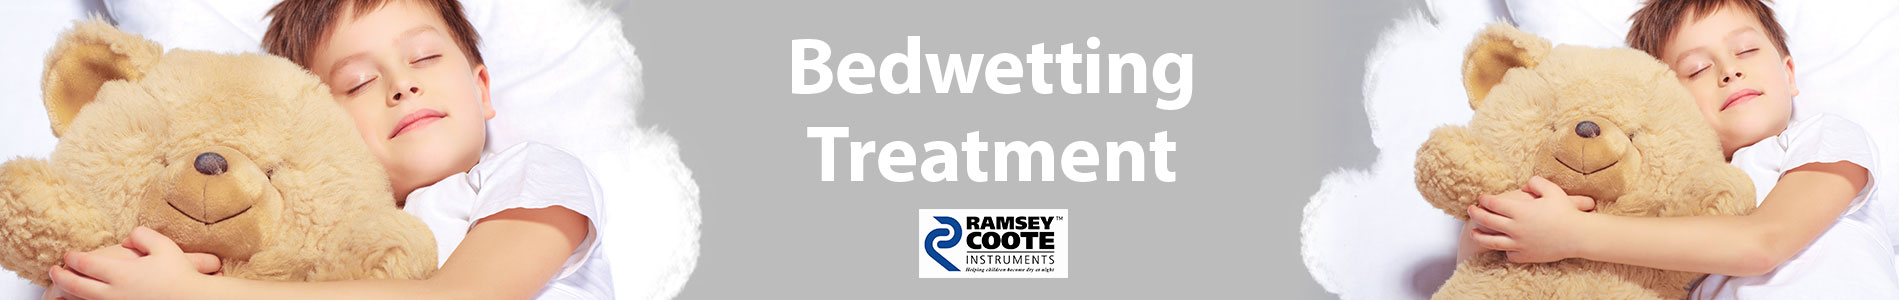 Bedwetting_banner